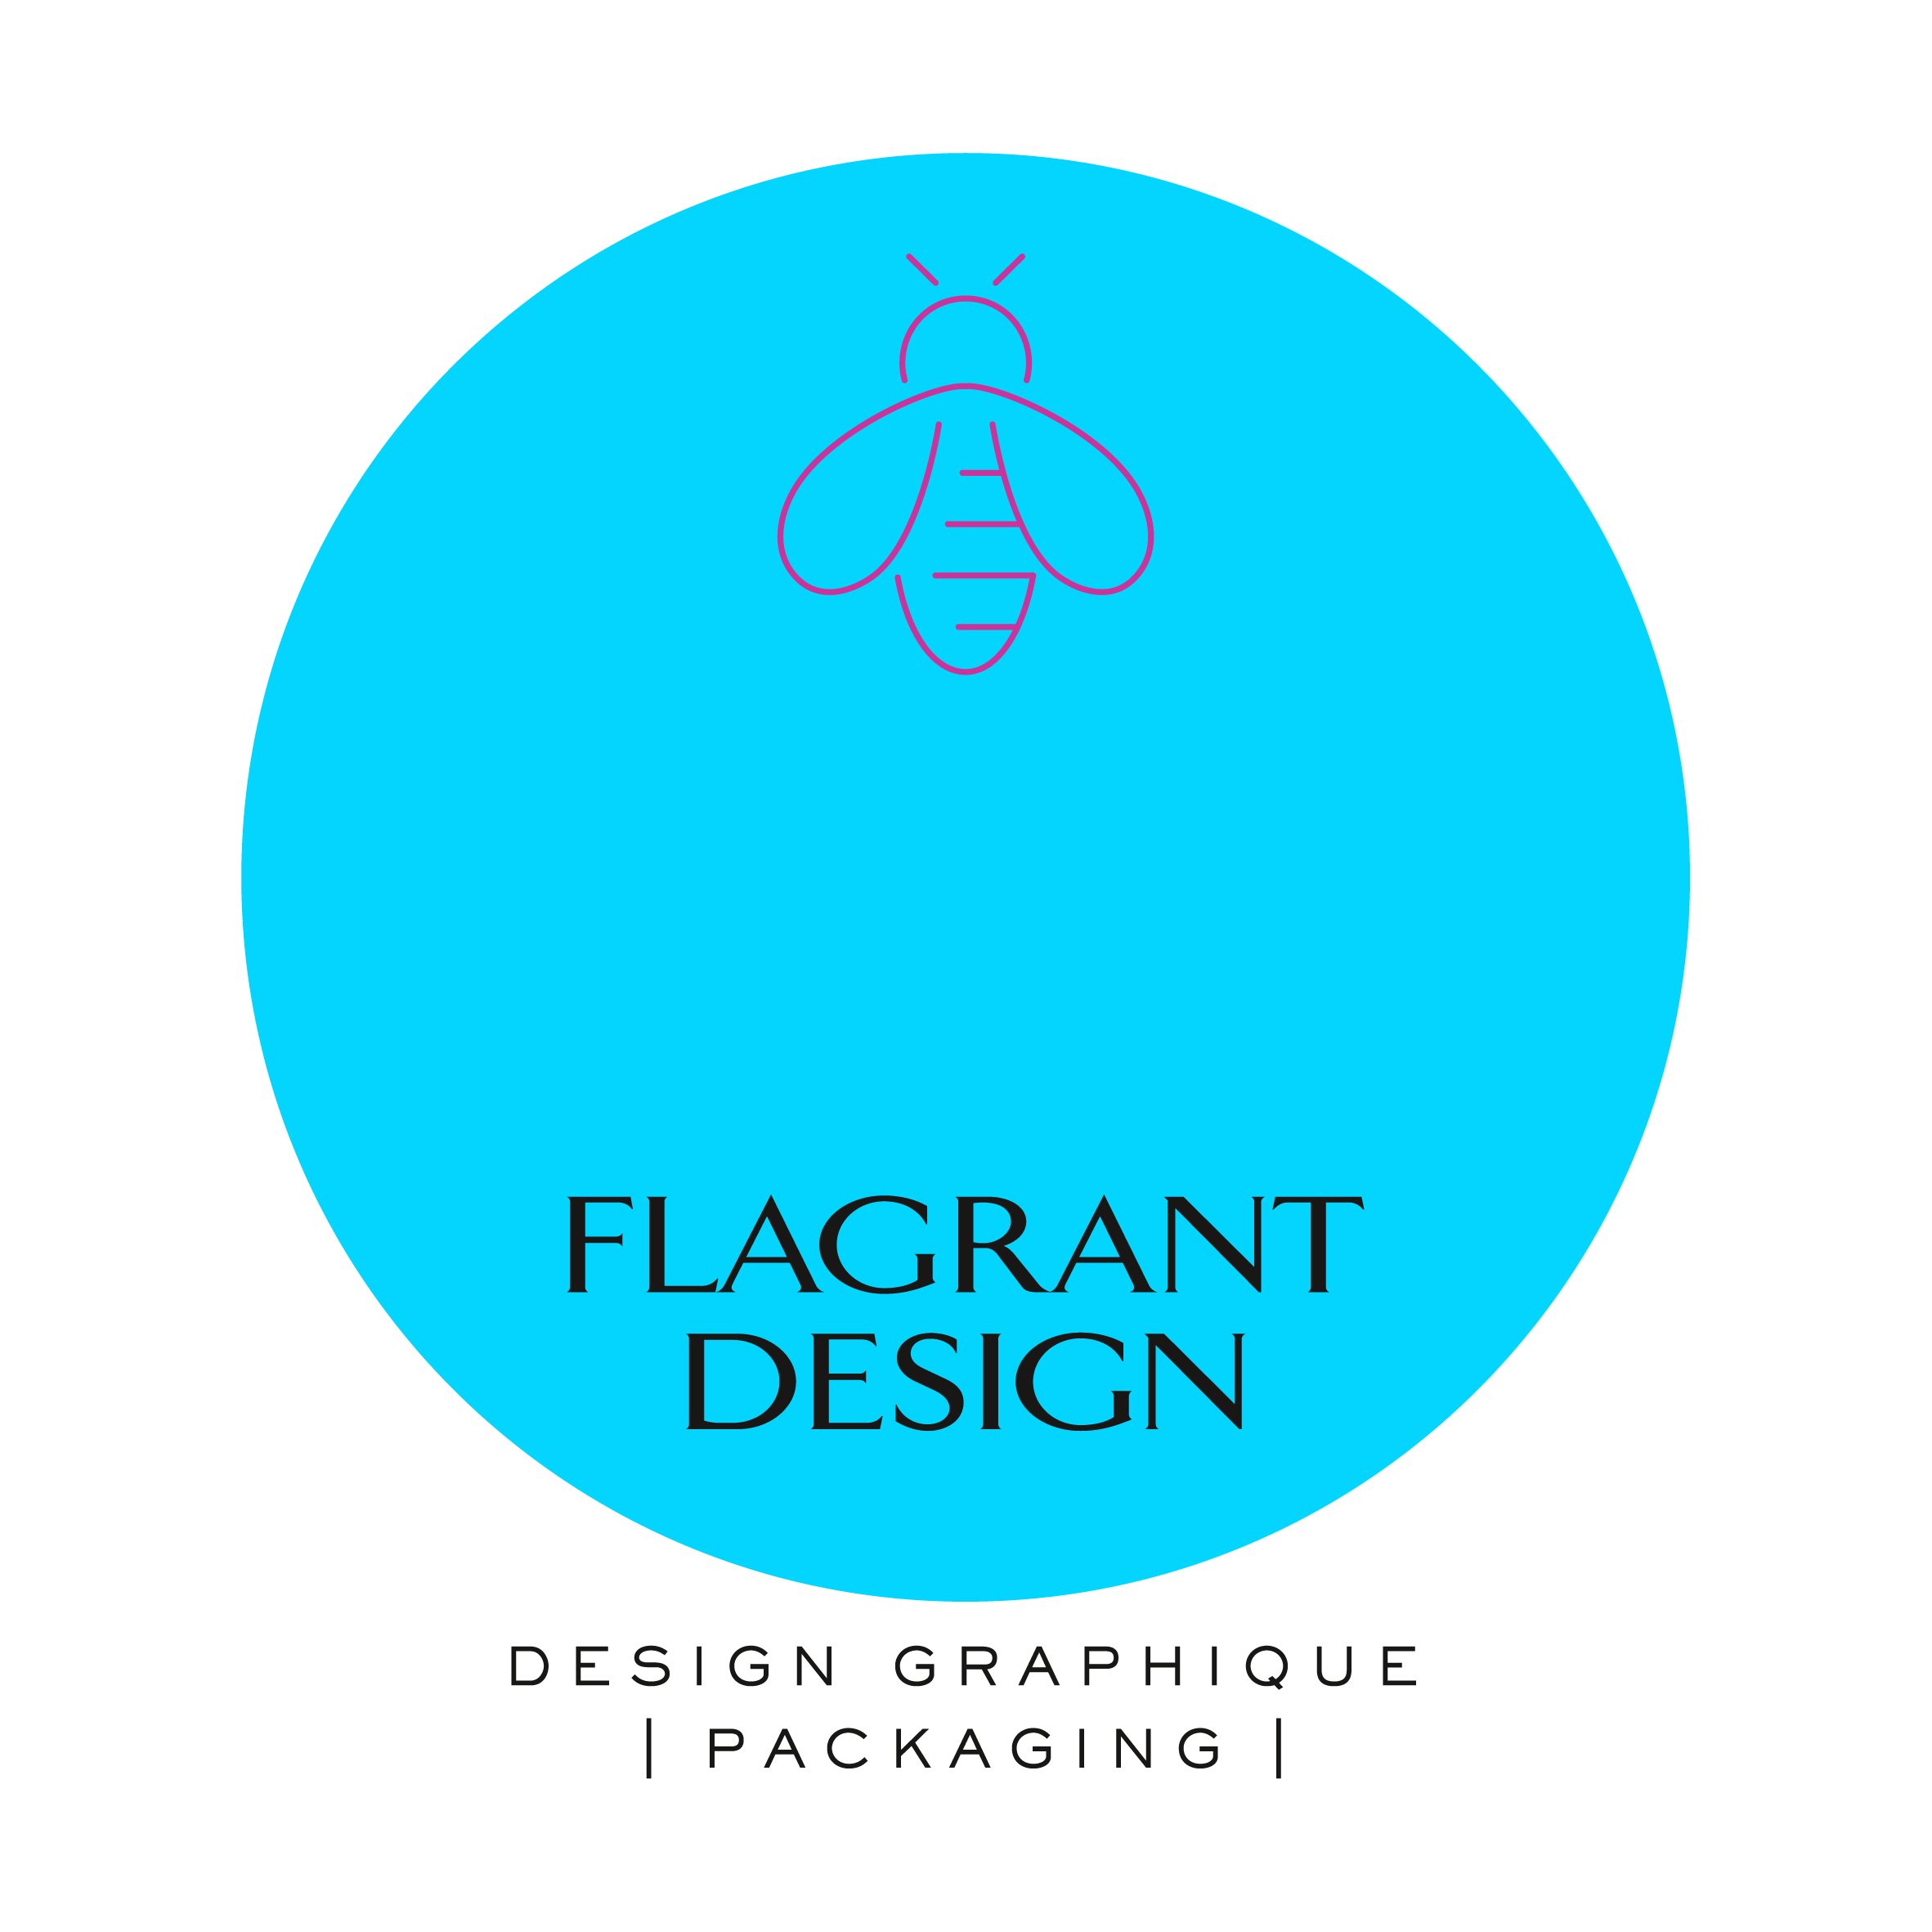 Logo de FLAGRANT DESIGN